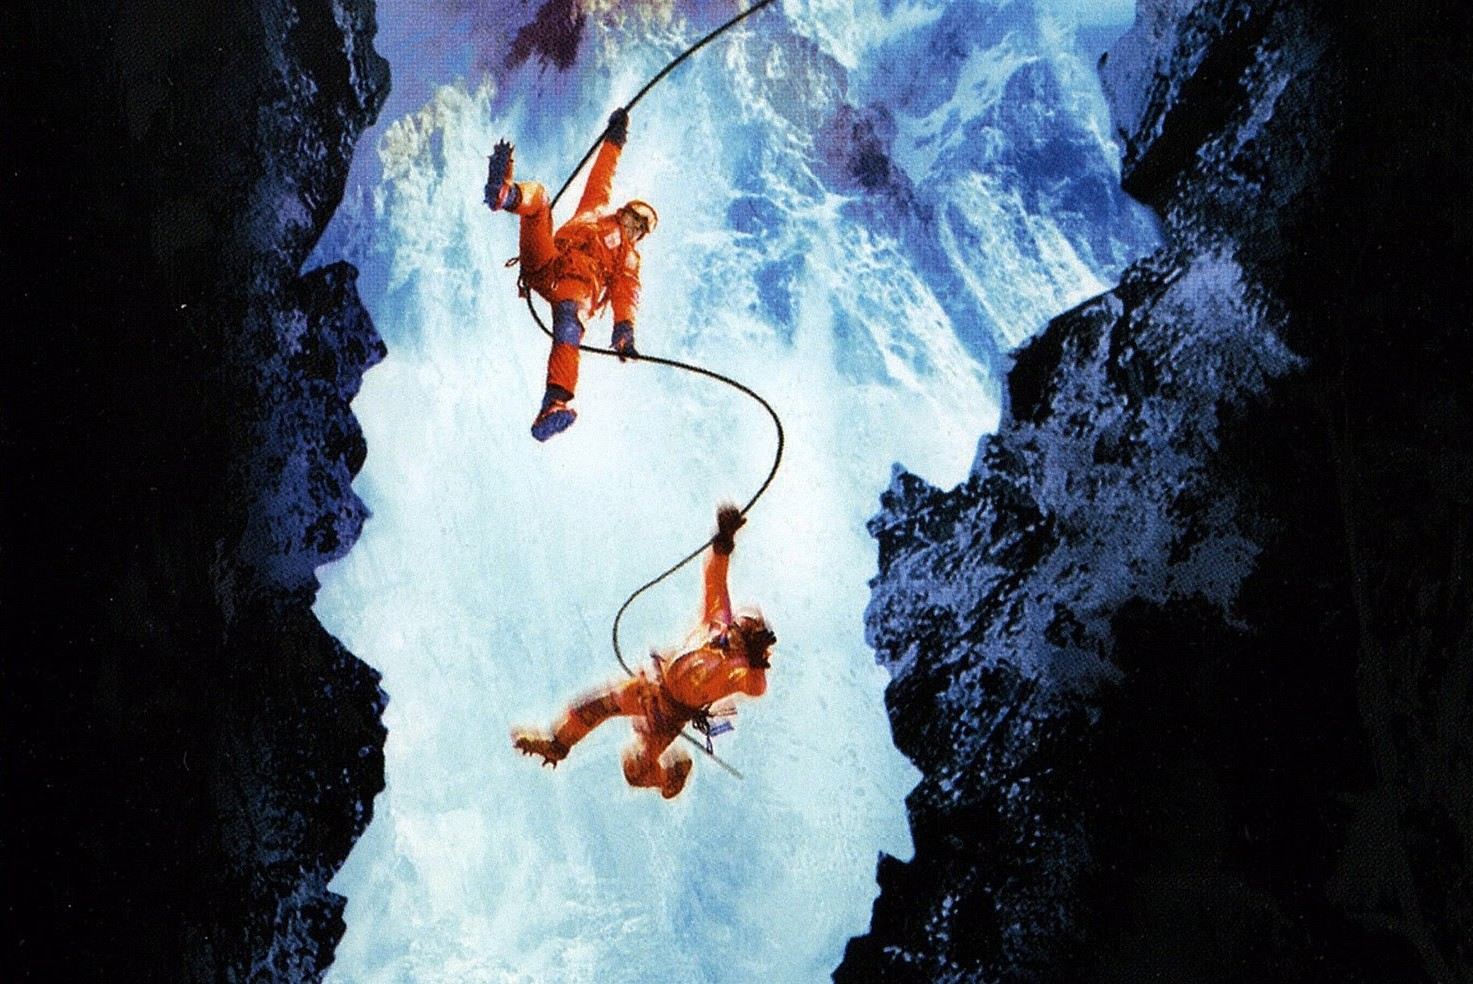 5 Worst Climbing Movies of All Time